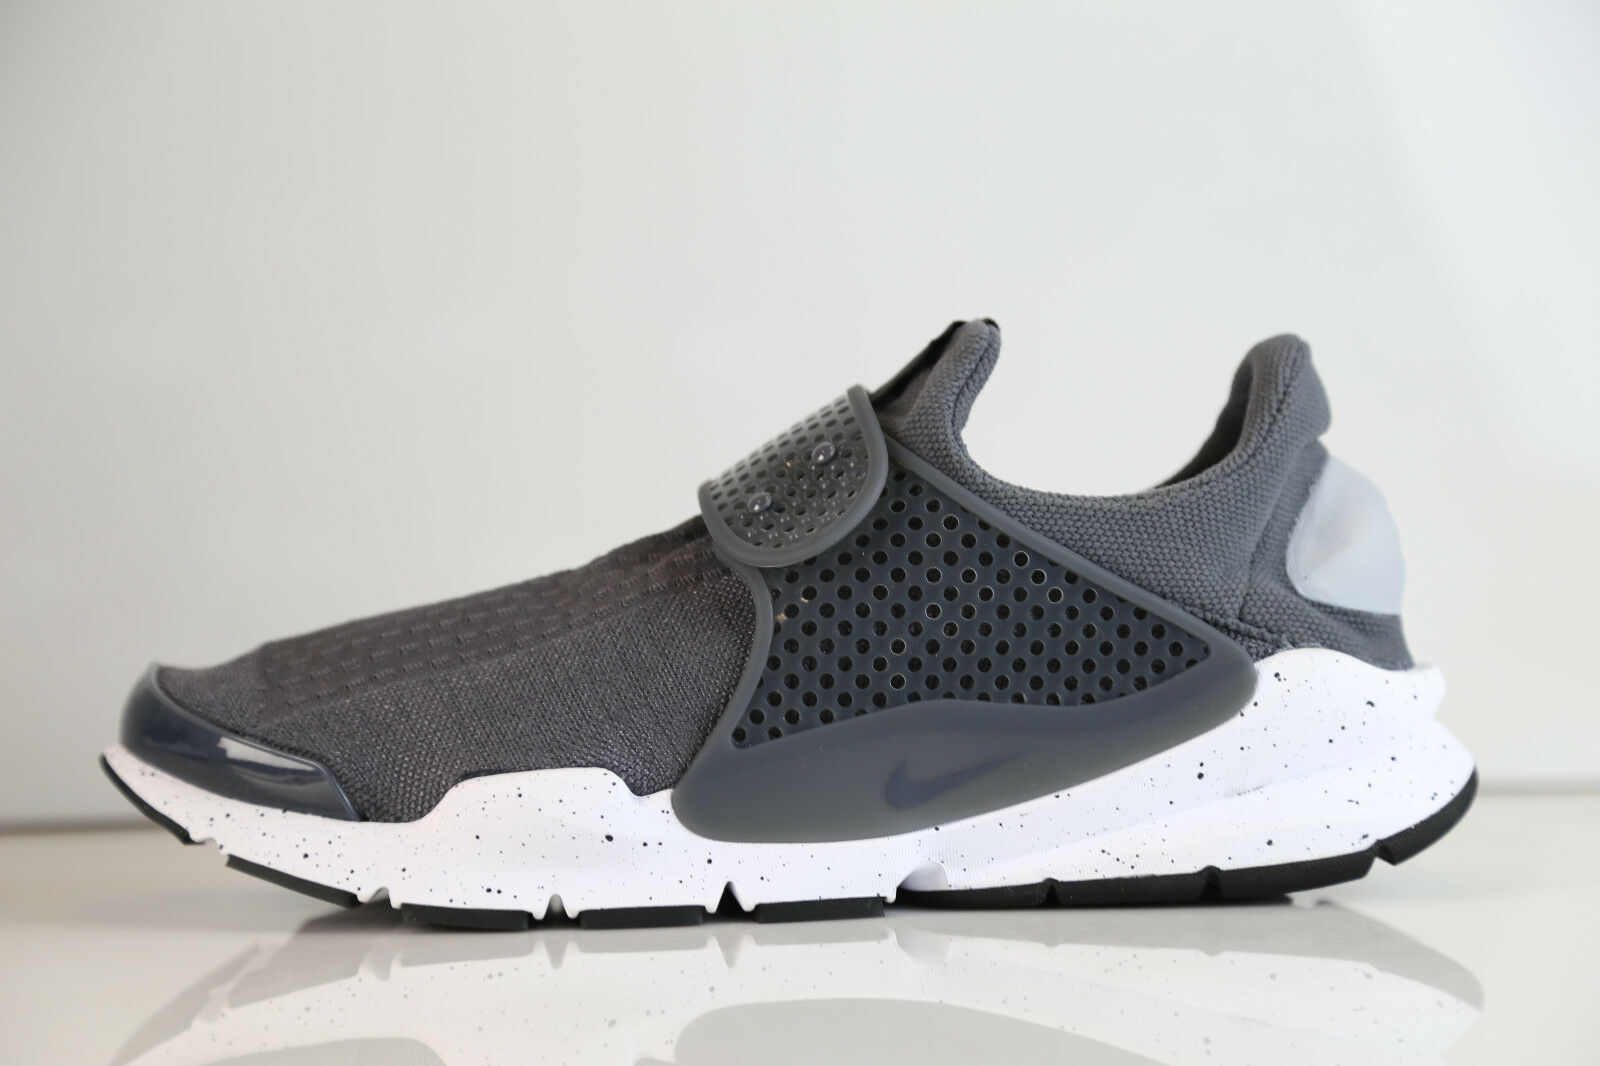 Nike Sock Dart Wolf Grey 819686-003 10-13 11 se mesh flyknit The latest discount shoes for men and women